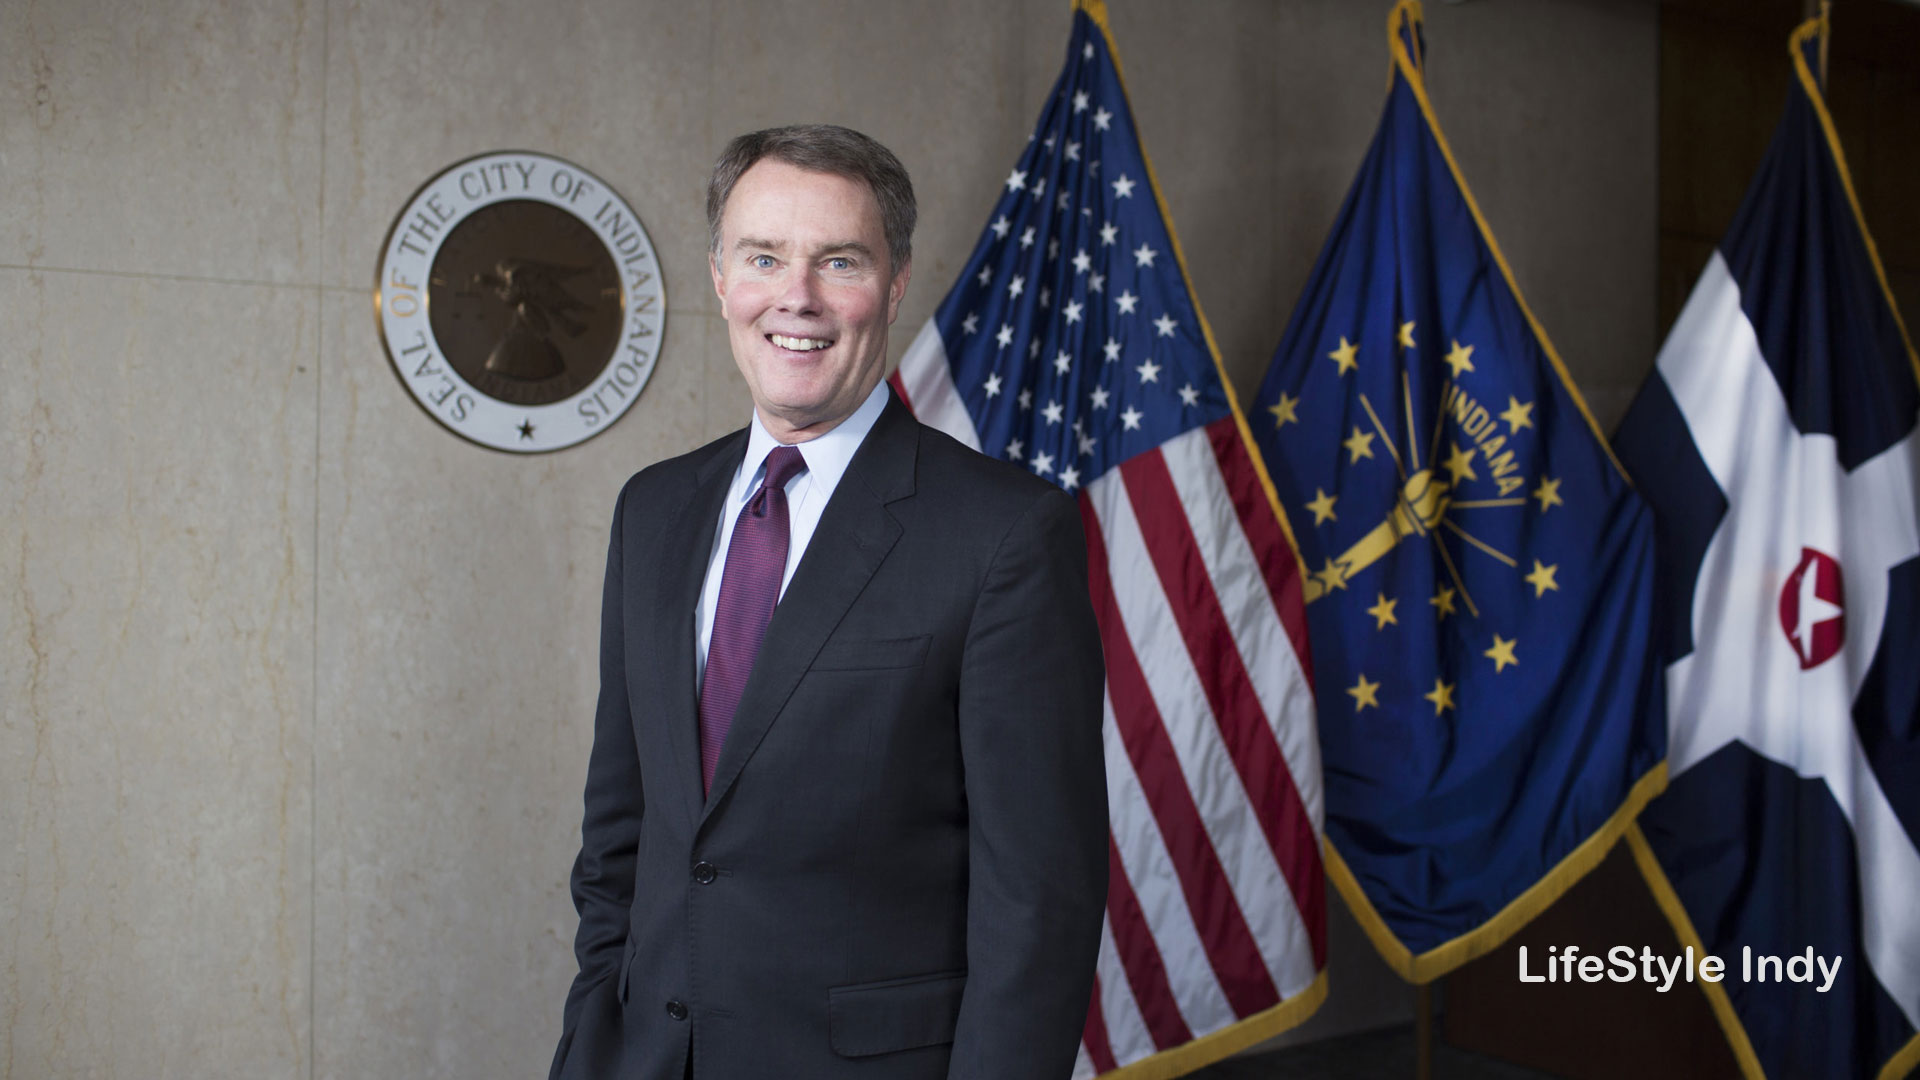 Thoughts from Indianapolis Mayor Joe Hogsett